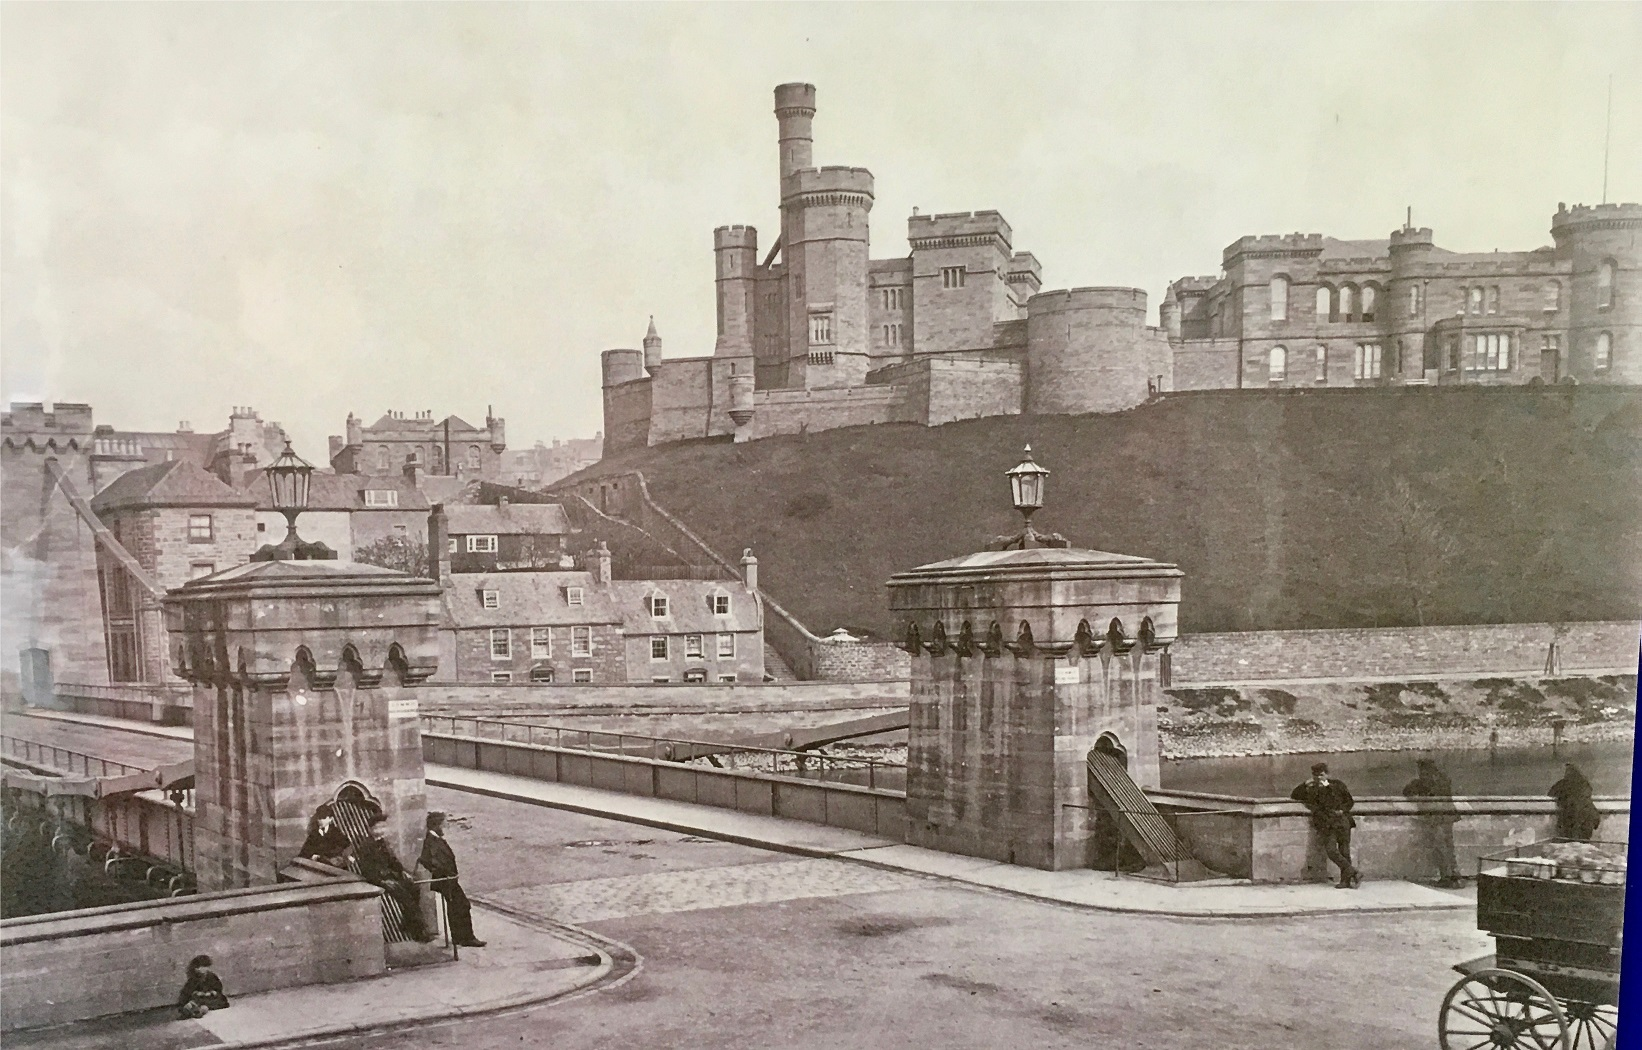 Inverness Castle, dating from the twentieth century. © HLH/Highland Libraries